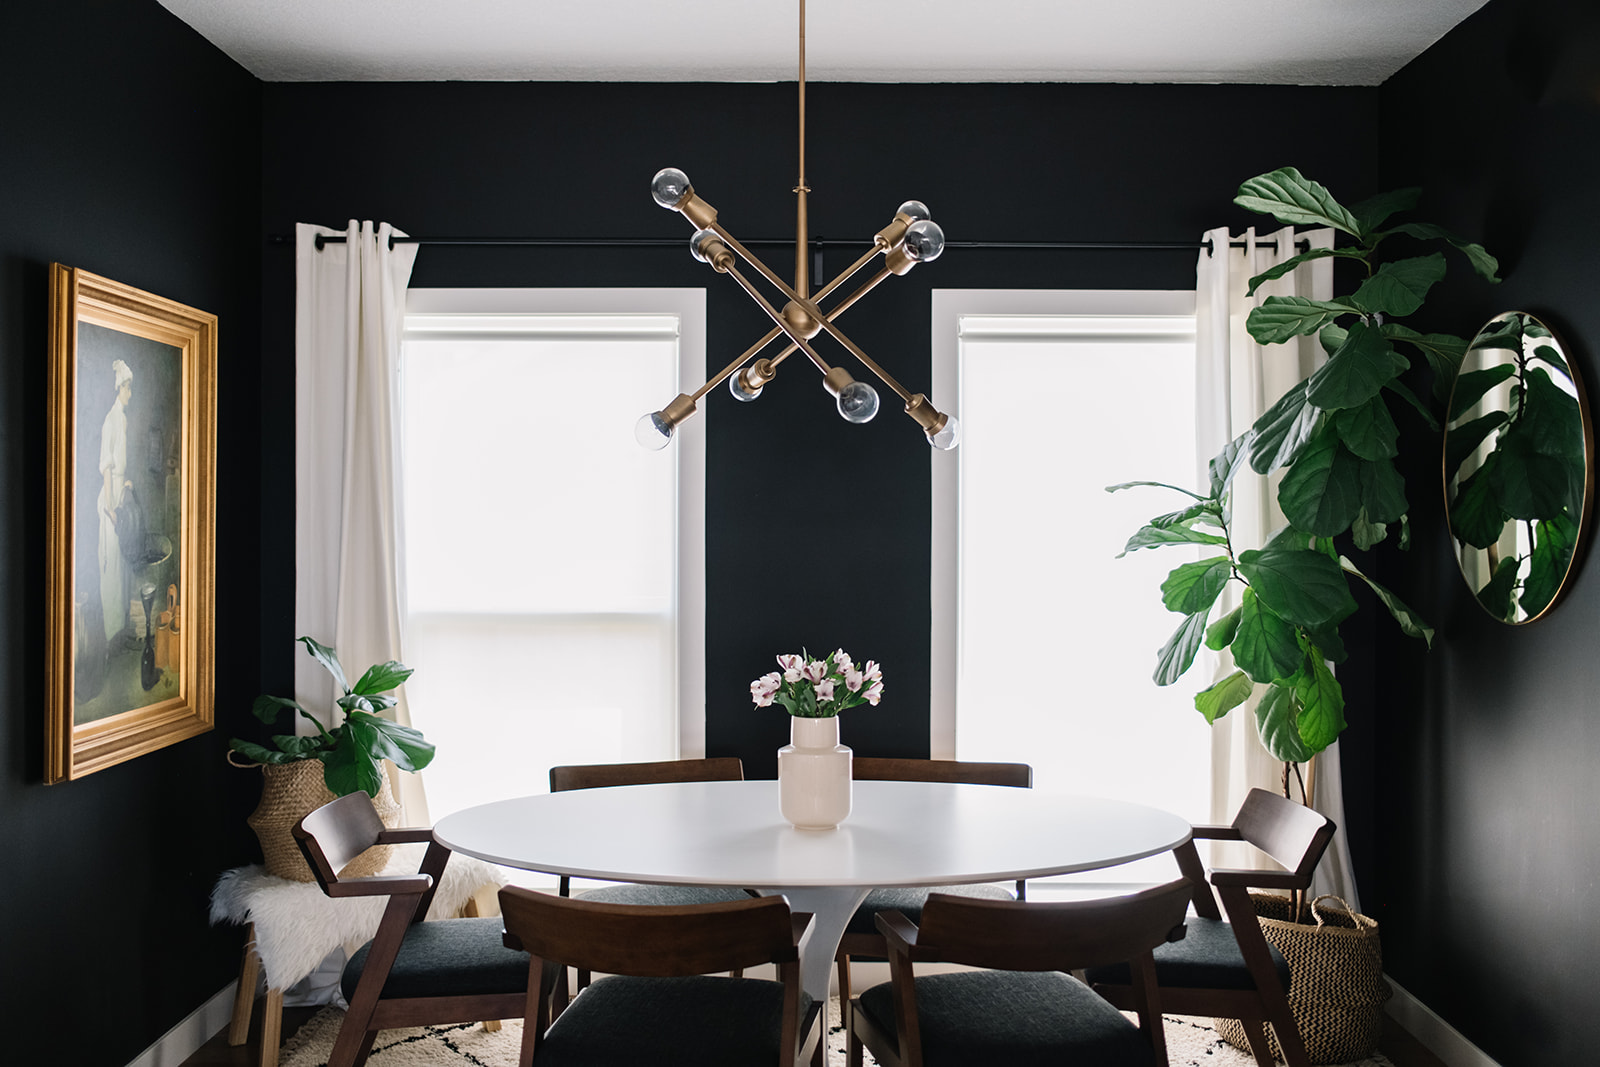 Black White Walnut Our Dining Room Refresh With The Article Zola Dining Chair 204 Park